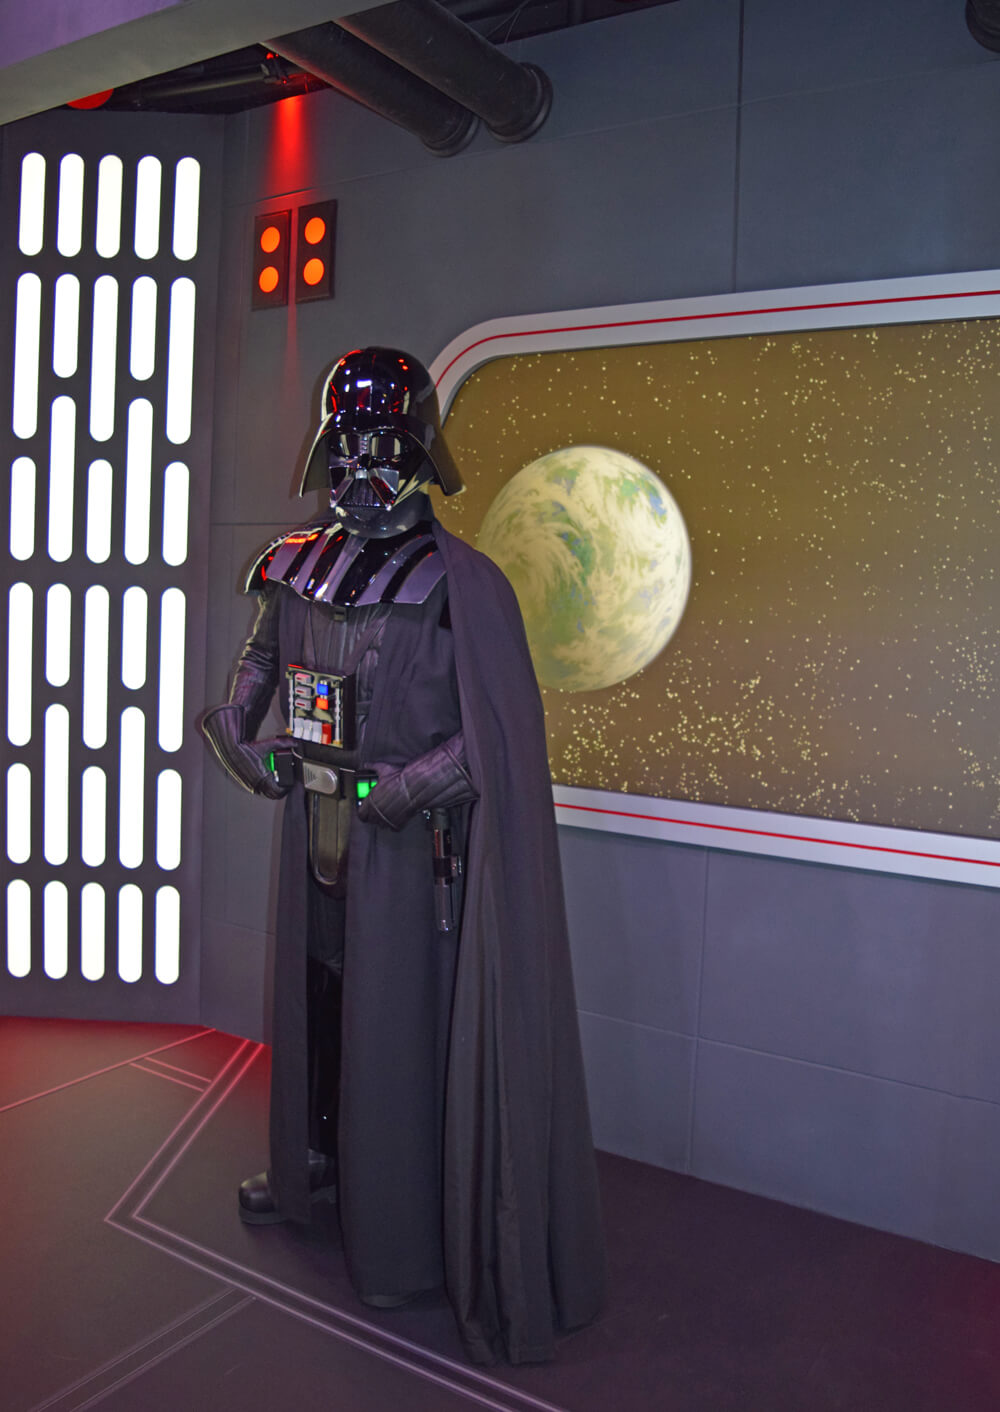 Disneyland Season of the Force - Darth Vader